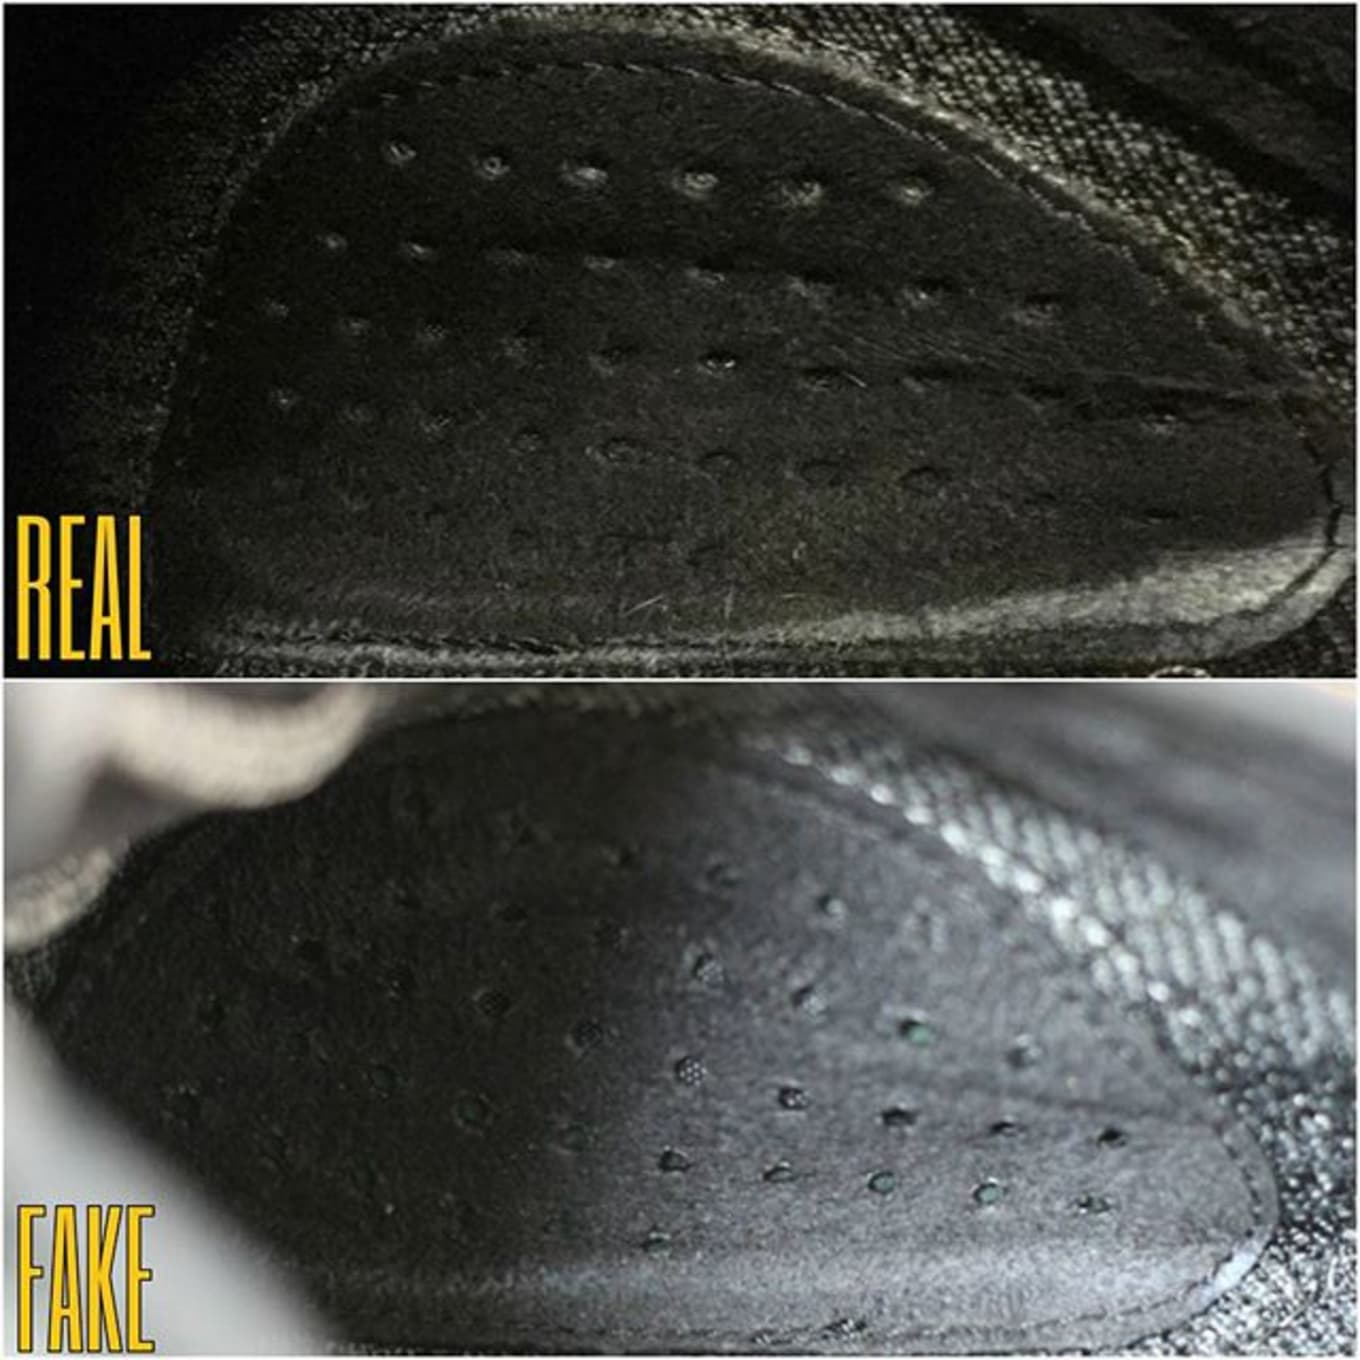 c4d1e0a25de adidas yeezy boost 350 pirate black real fake | Sole Collector